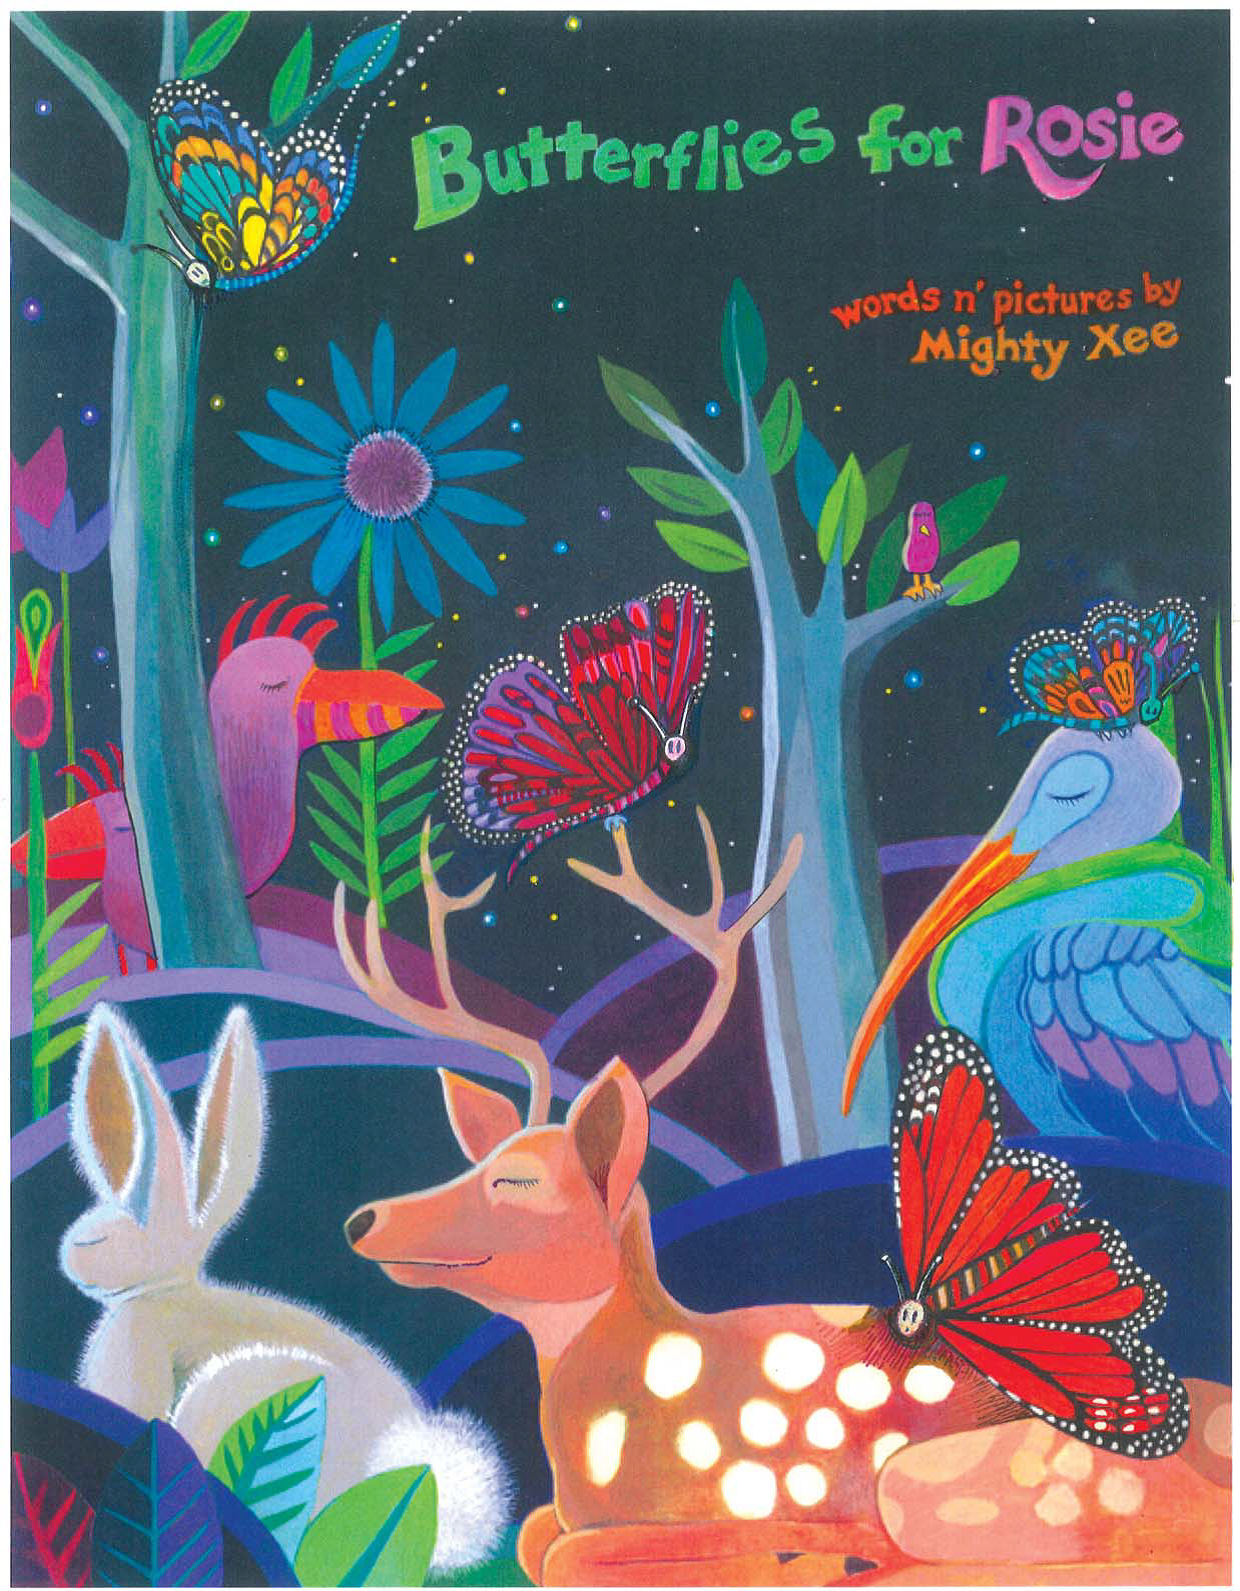 Butterflies for Rosie_cover.png